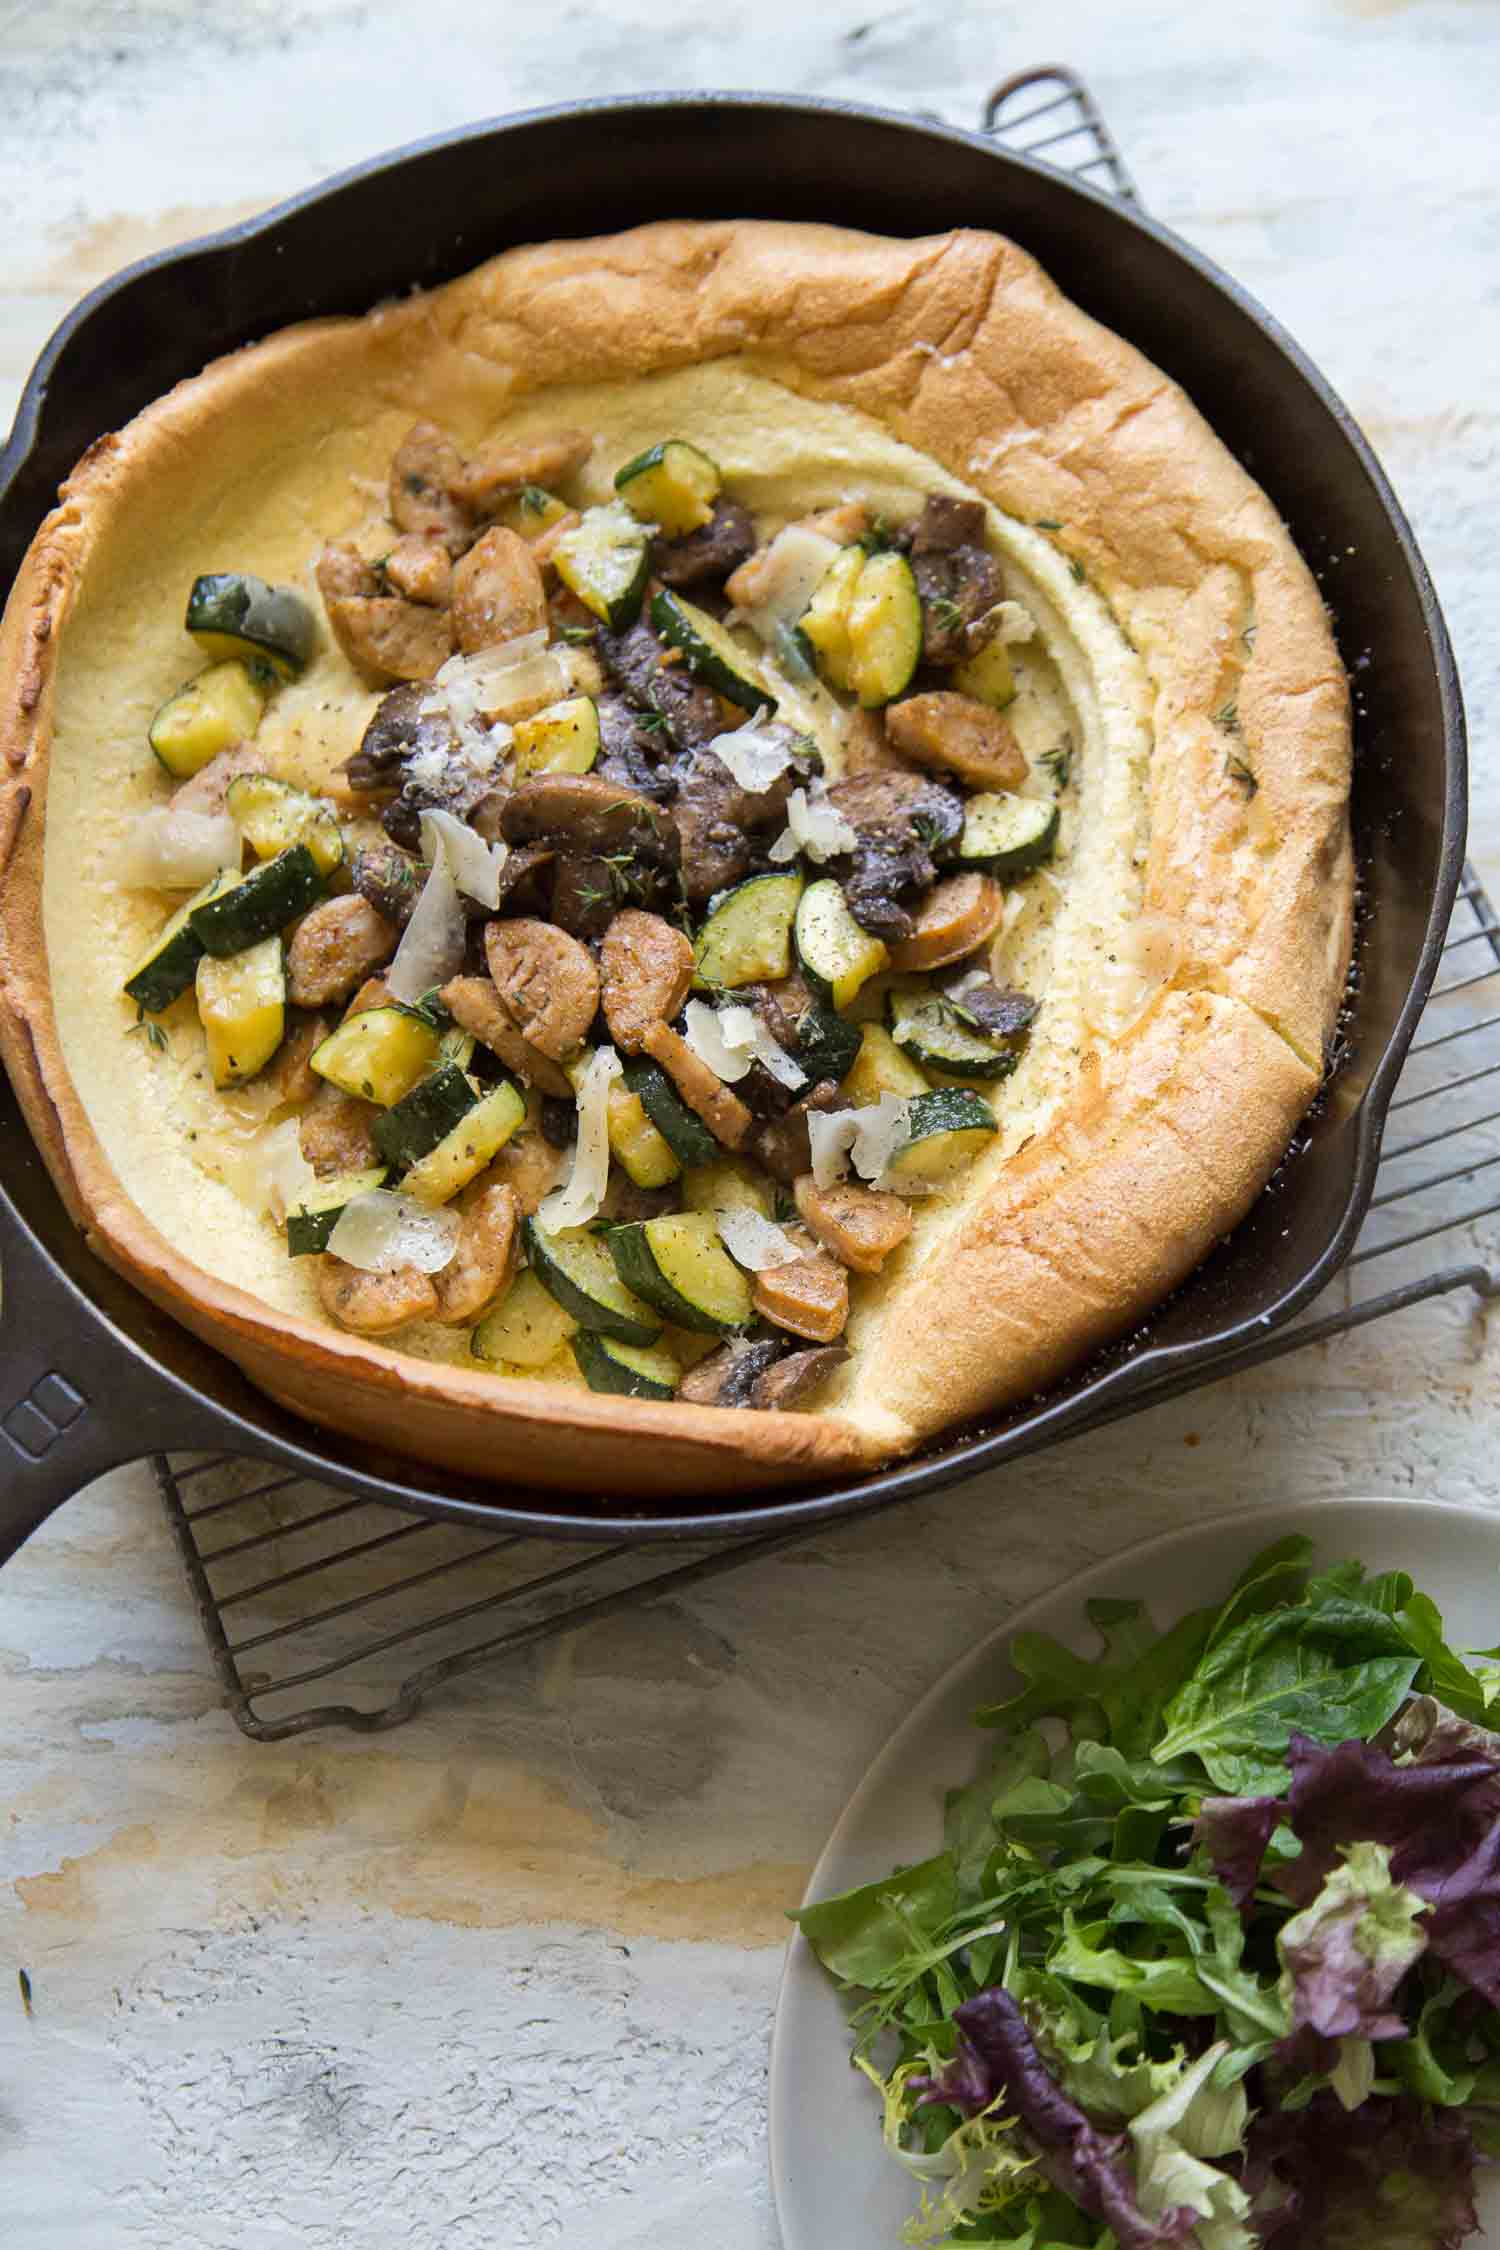 Savory Dutch Baby Pancake with veggies and sausage